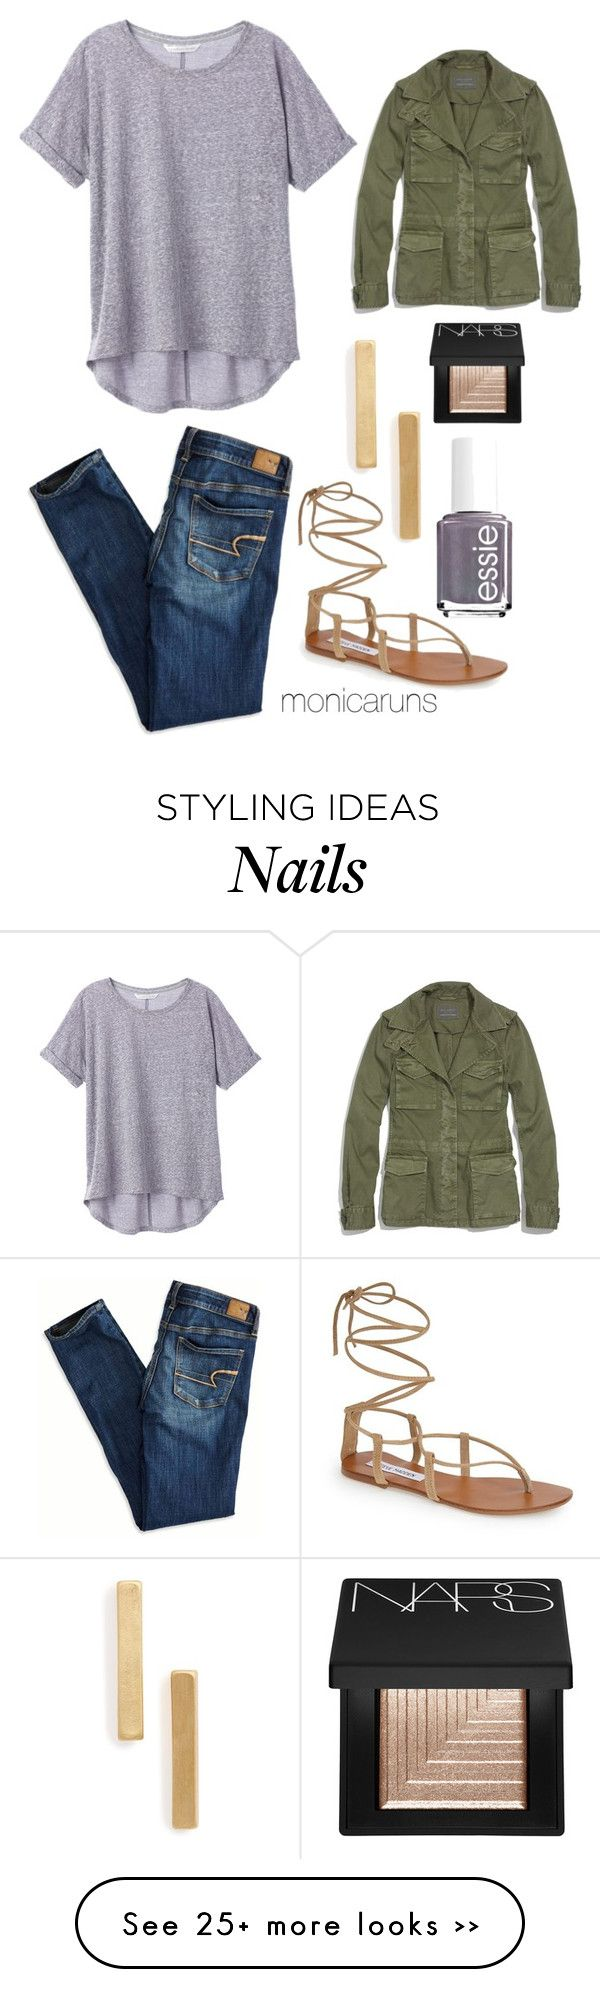 """""""9.12.15"""" by monicaruns on Polyvore featuring Madewell, Essie, Steve Madden, American Eagle Outfitters, Topshop and NARS Cosmetics"""